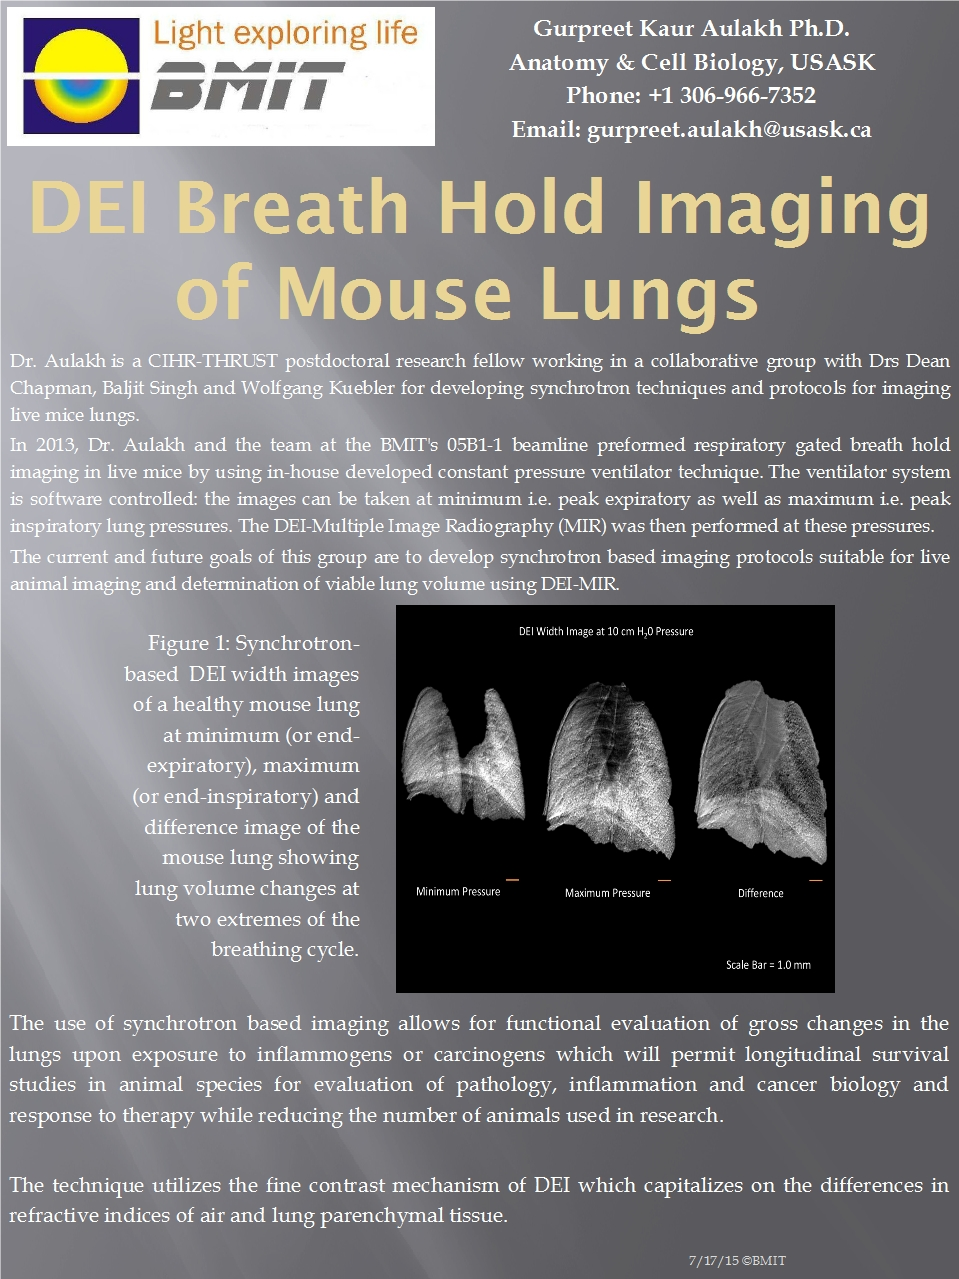 DEI Breath Hold Imaging Of Mouse Lungs Image